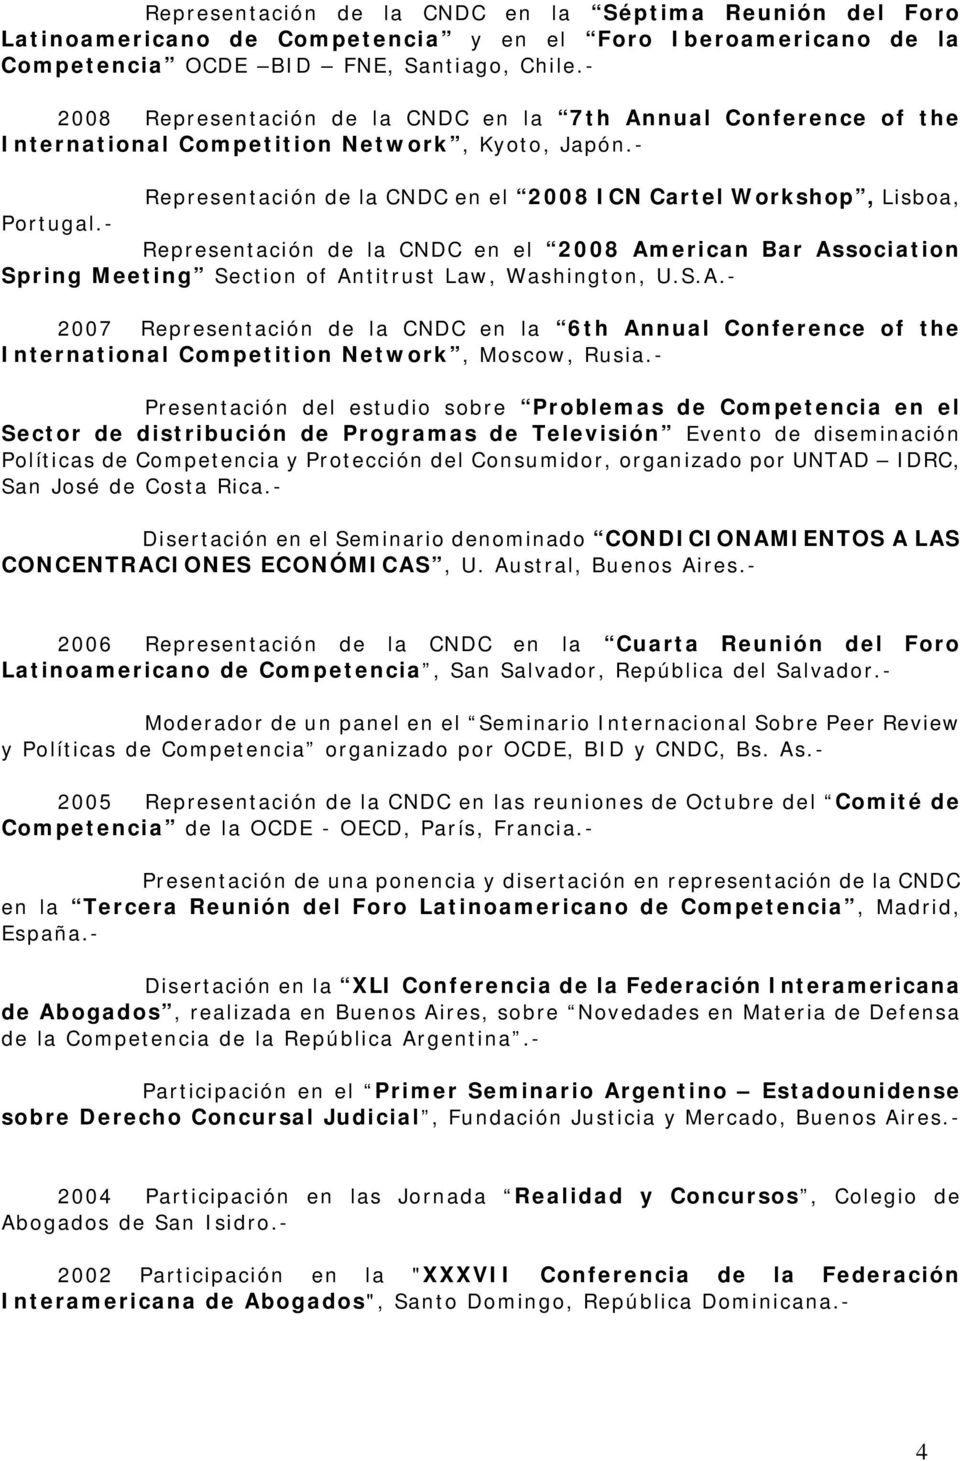 - Representación de la CNDC en el 2008 American Bar Association Spring Meeting Section of Antitrust Law, Washington, U.S.A.- 2007 Representación de la CNDC en la 6th Annual Conference of the International Competition Network, Moscow, Rusia.